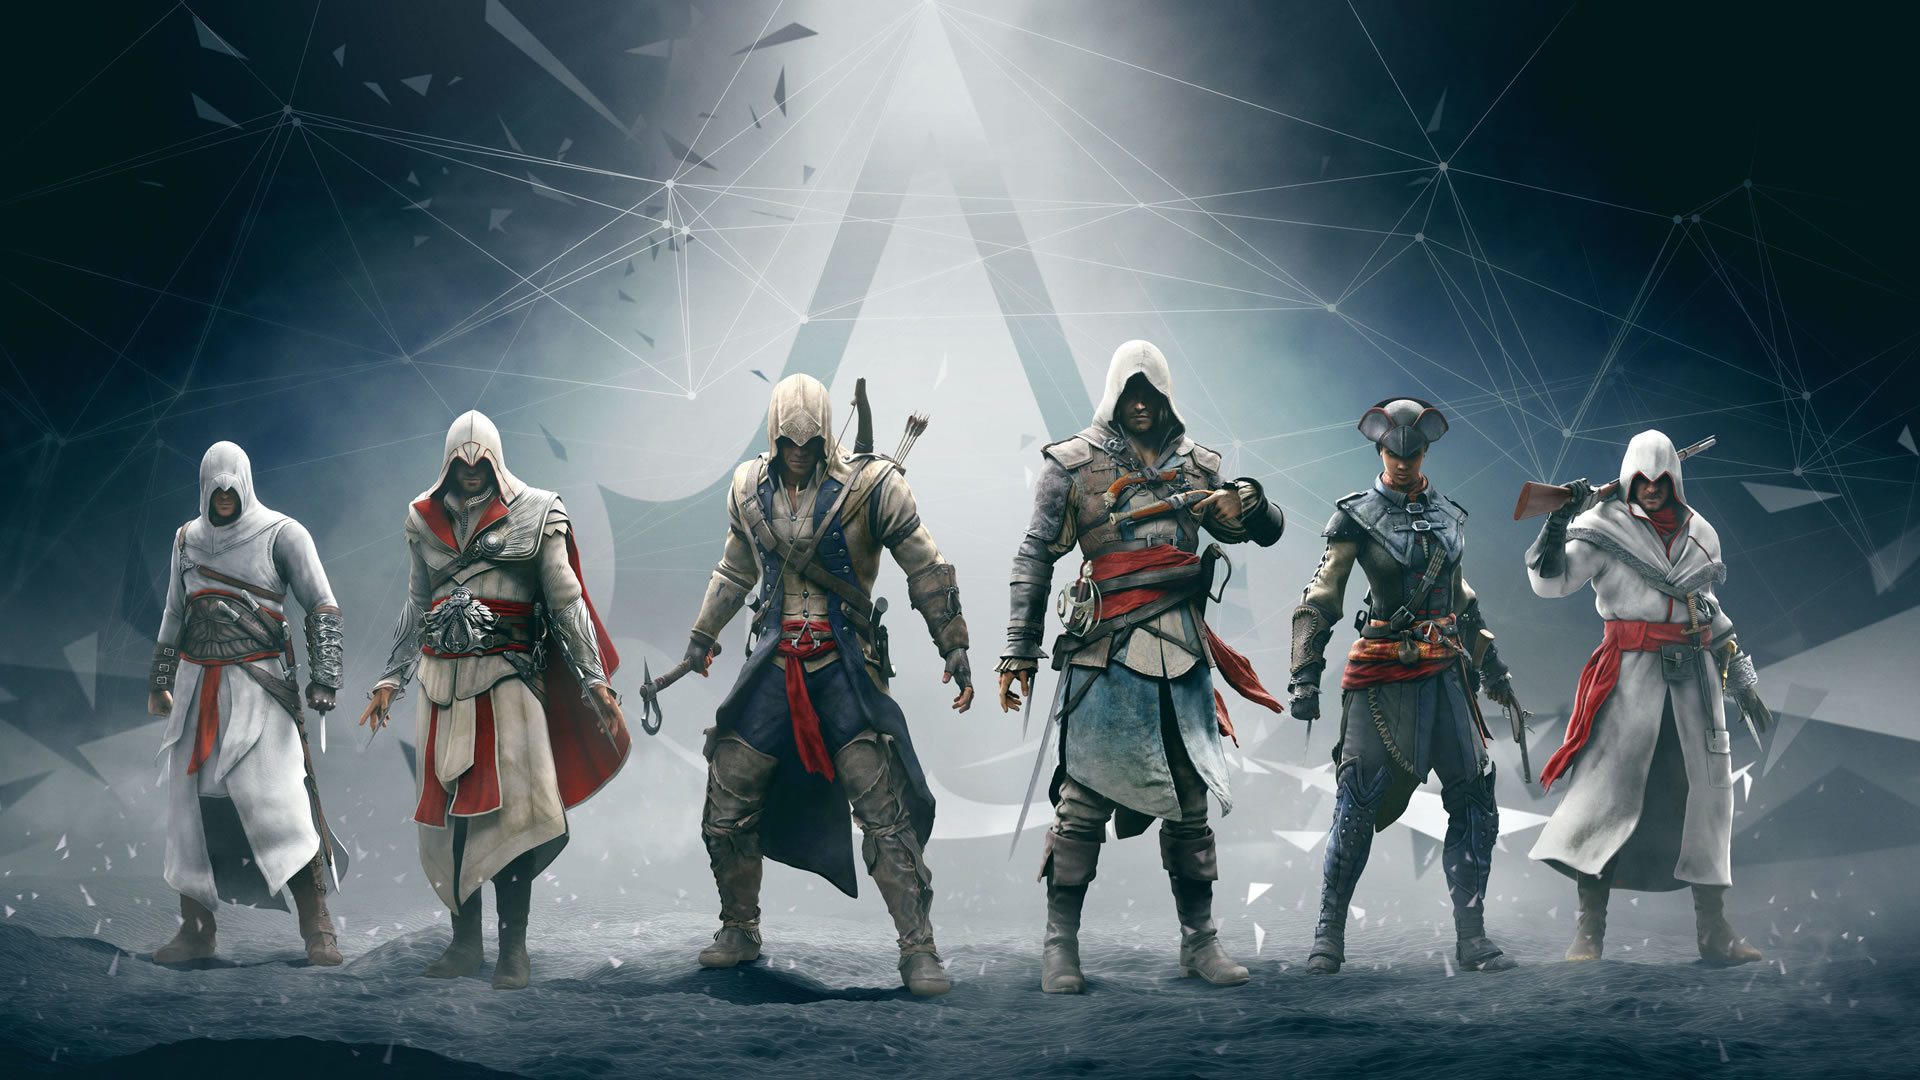 Connor Assassin S Creed Wallpapers 1920x1080 Full Hd 1080p